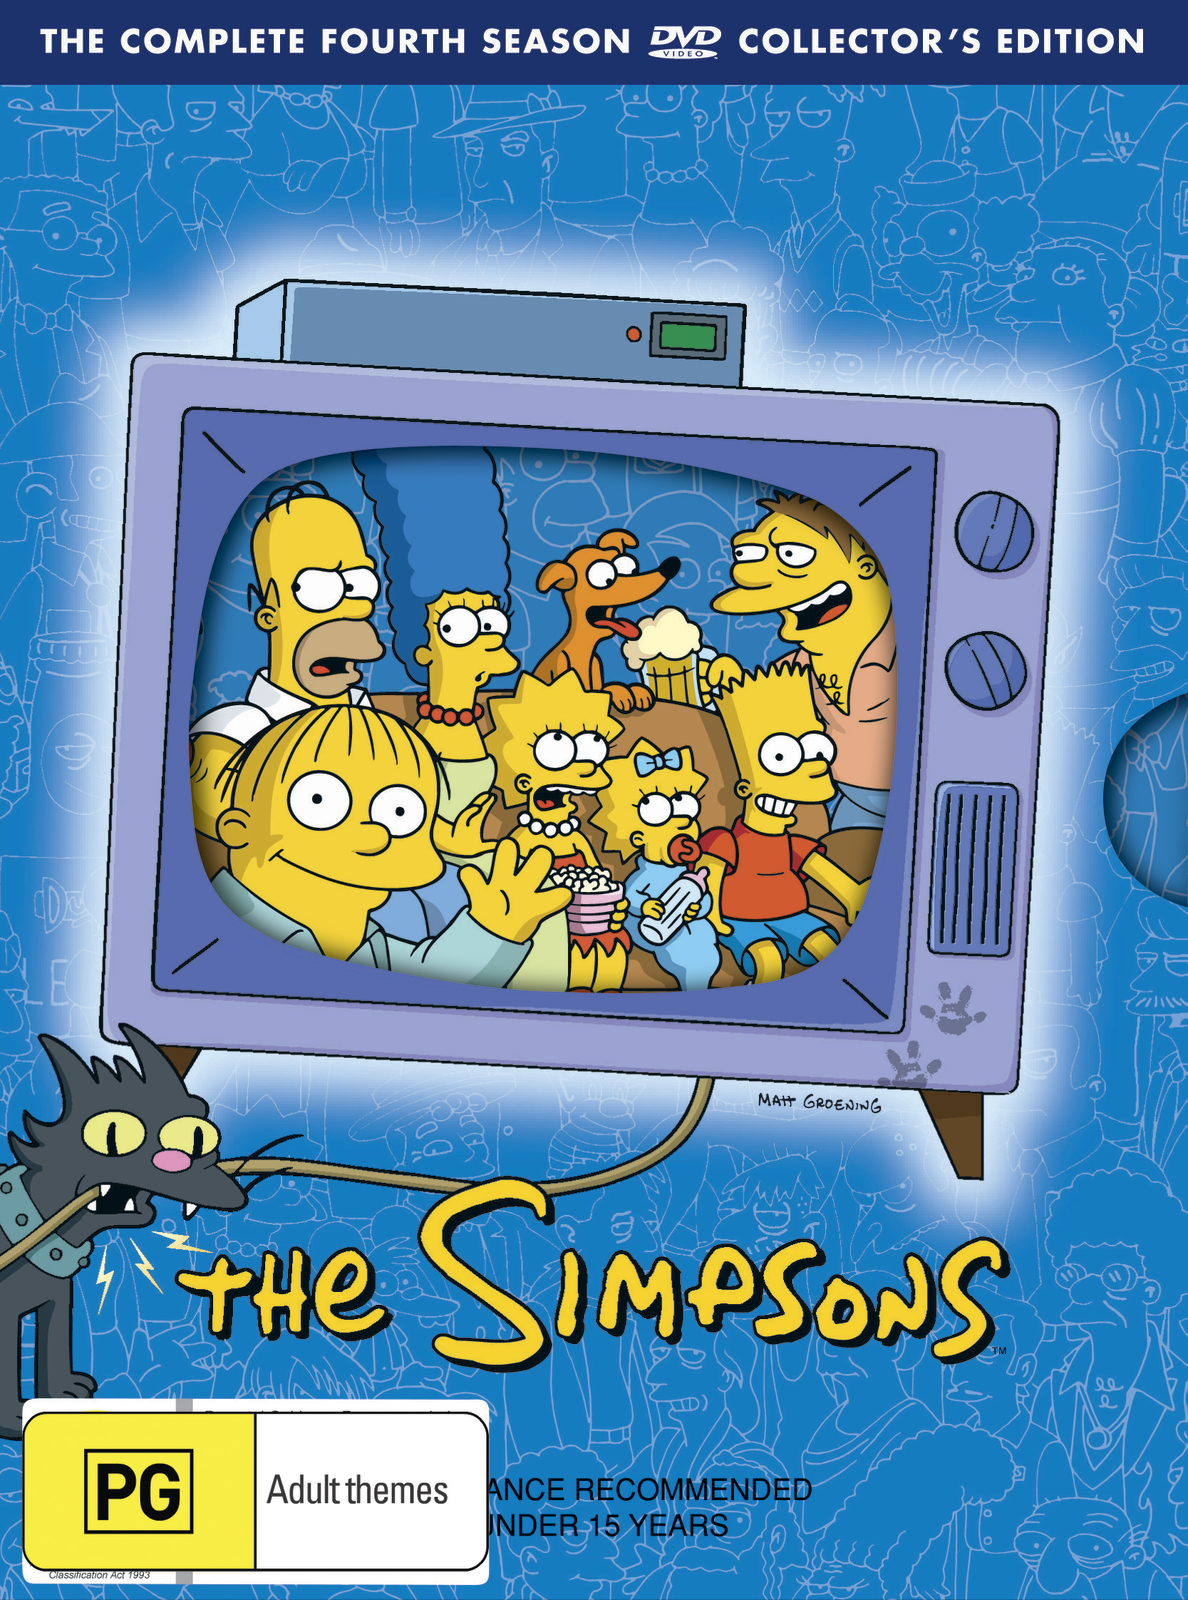 The Simpsons - The Complete Fourth Season on DVD image